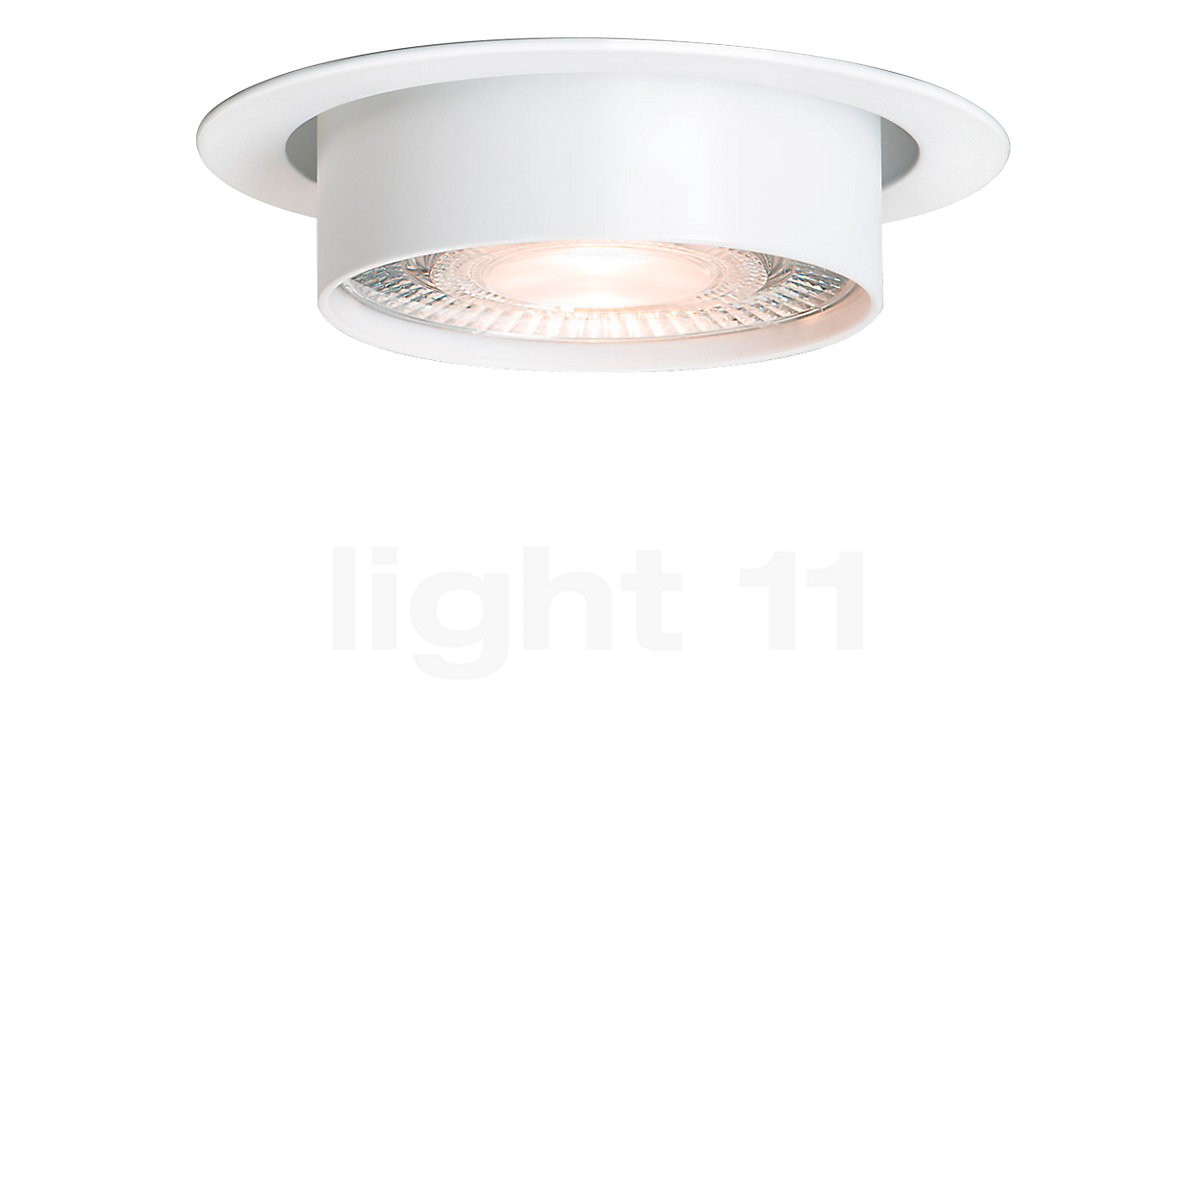 Buy Mawa Wittenberg 4 0 Recessed Ceiling Light Round Led Excl Transformer At